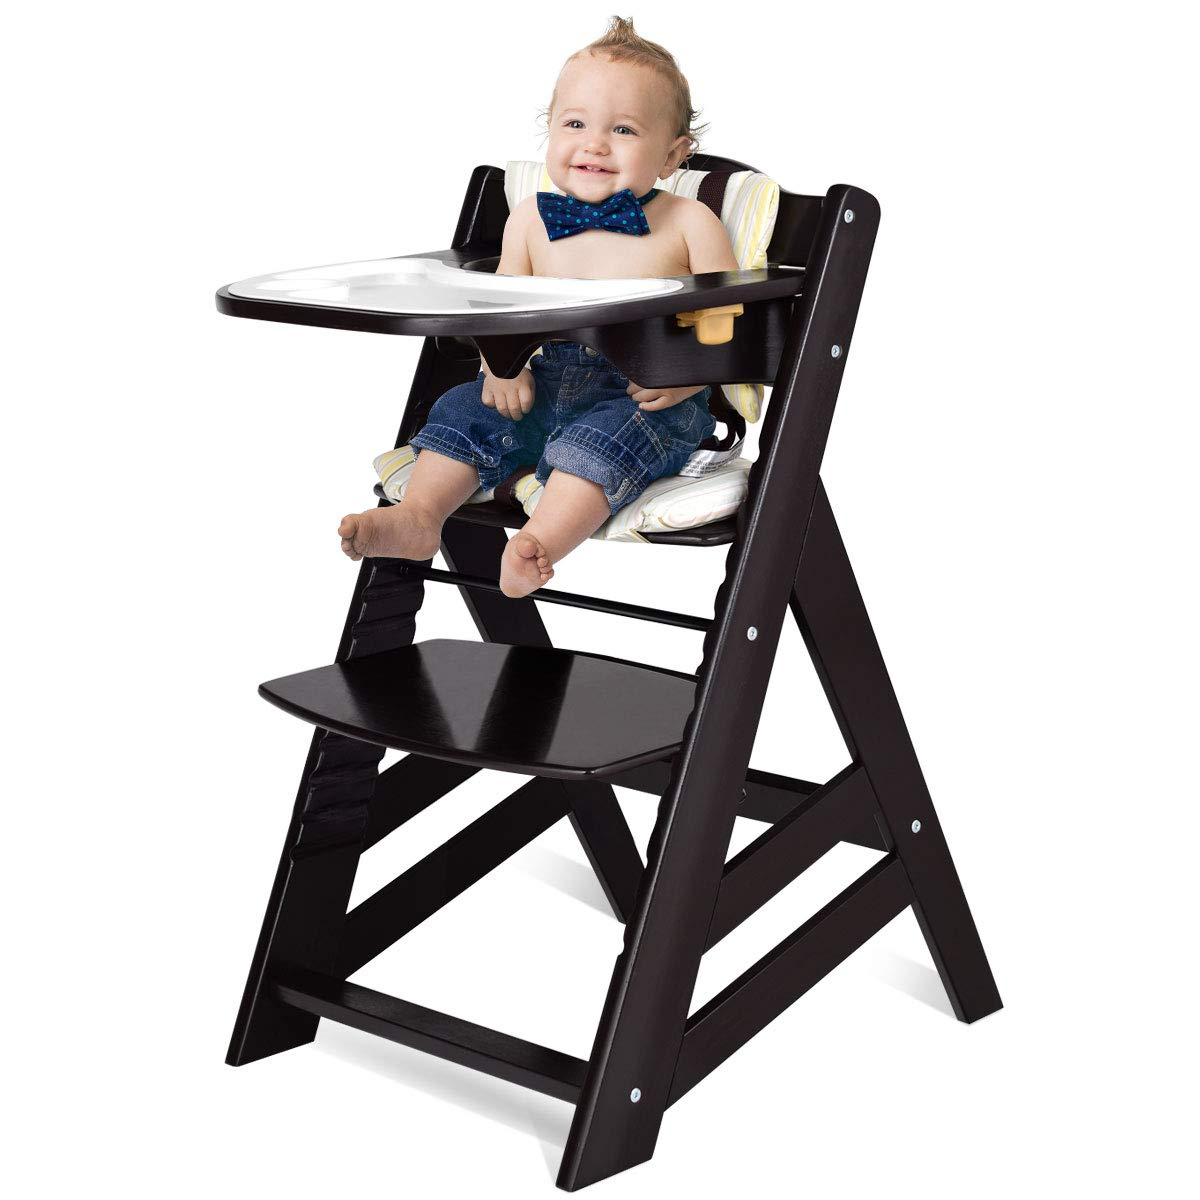 Costzon Wooden High Chair, Baby Dining Chair with Adjustable Height, Removable Tray, 5-Point Safety Harness, Padded Cushion, Perfect Toddlers Feeding Chair by Costzon